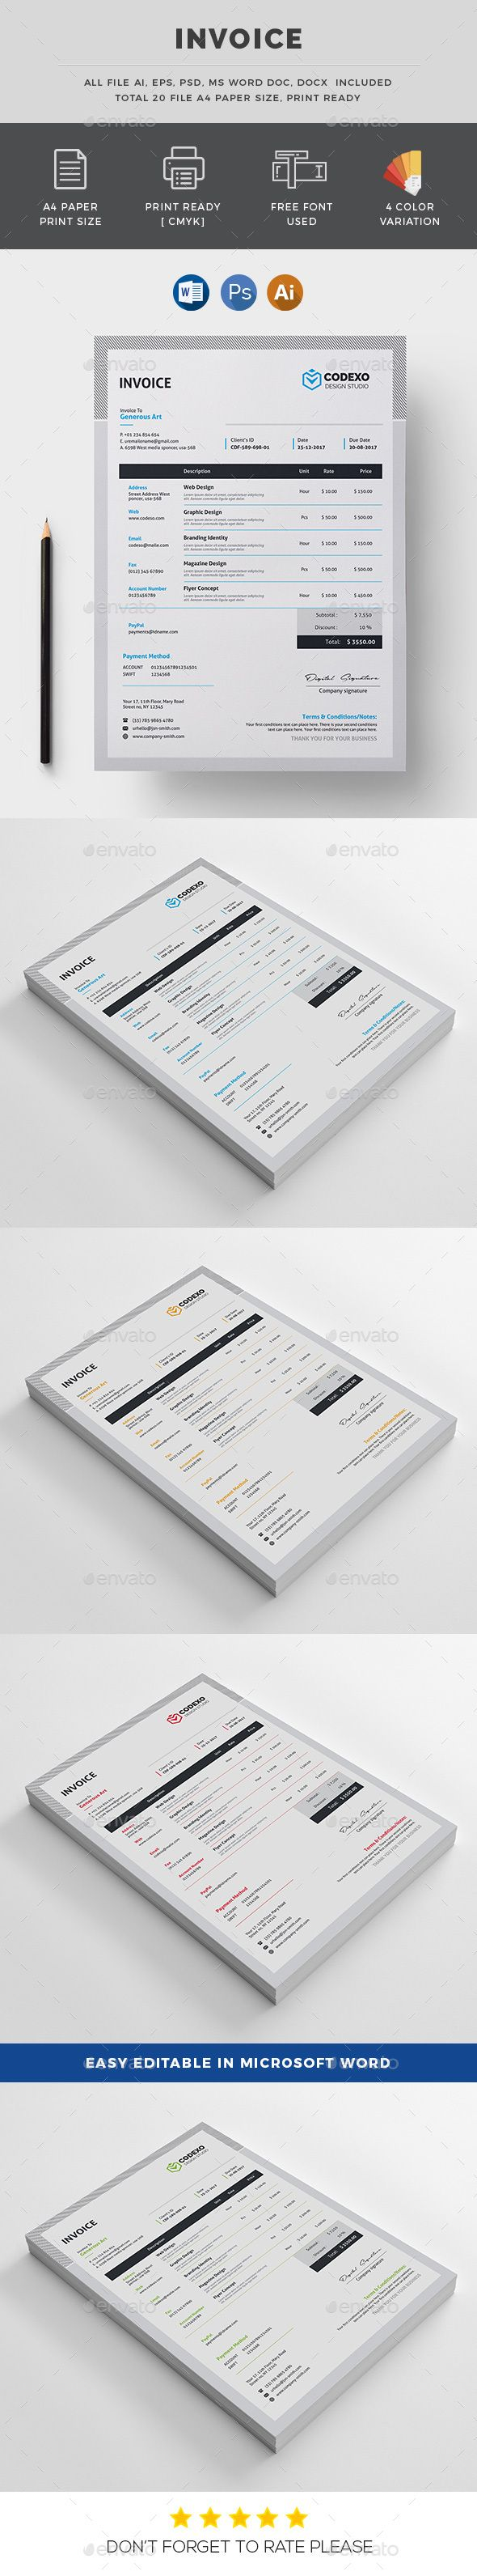 95 best Invoice Templates images on Pinterest | Invoice template ...